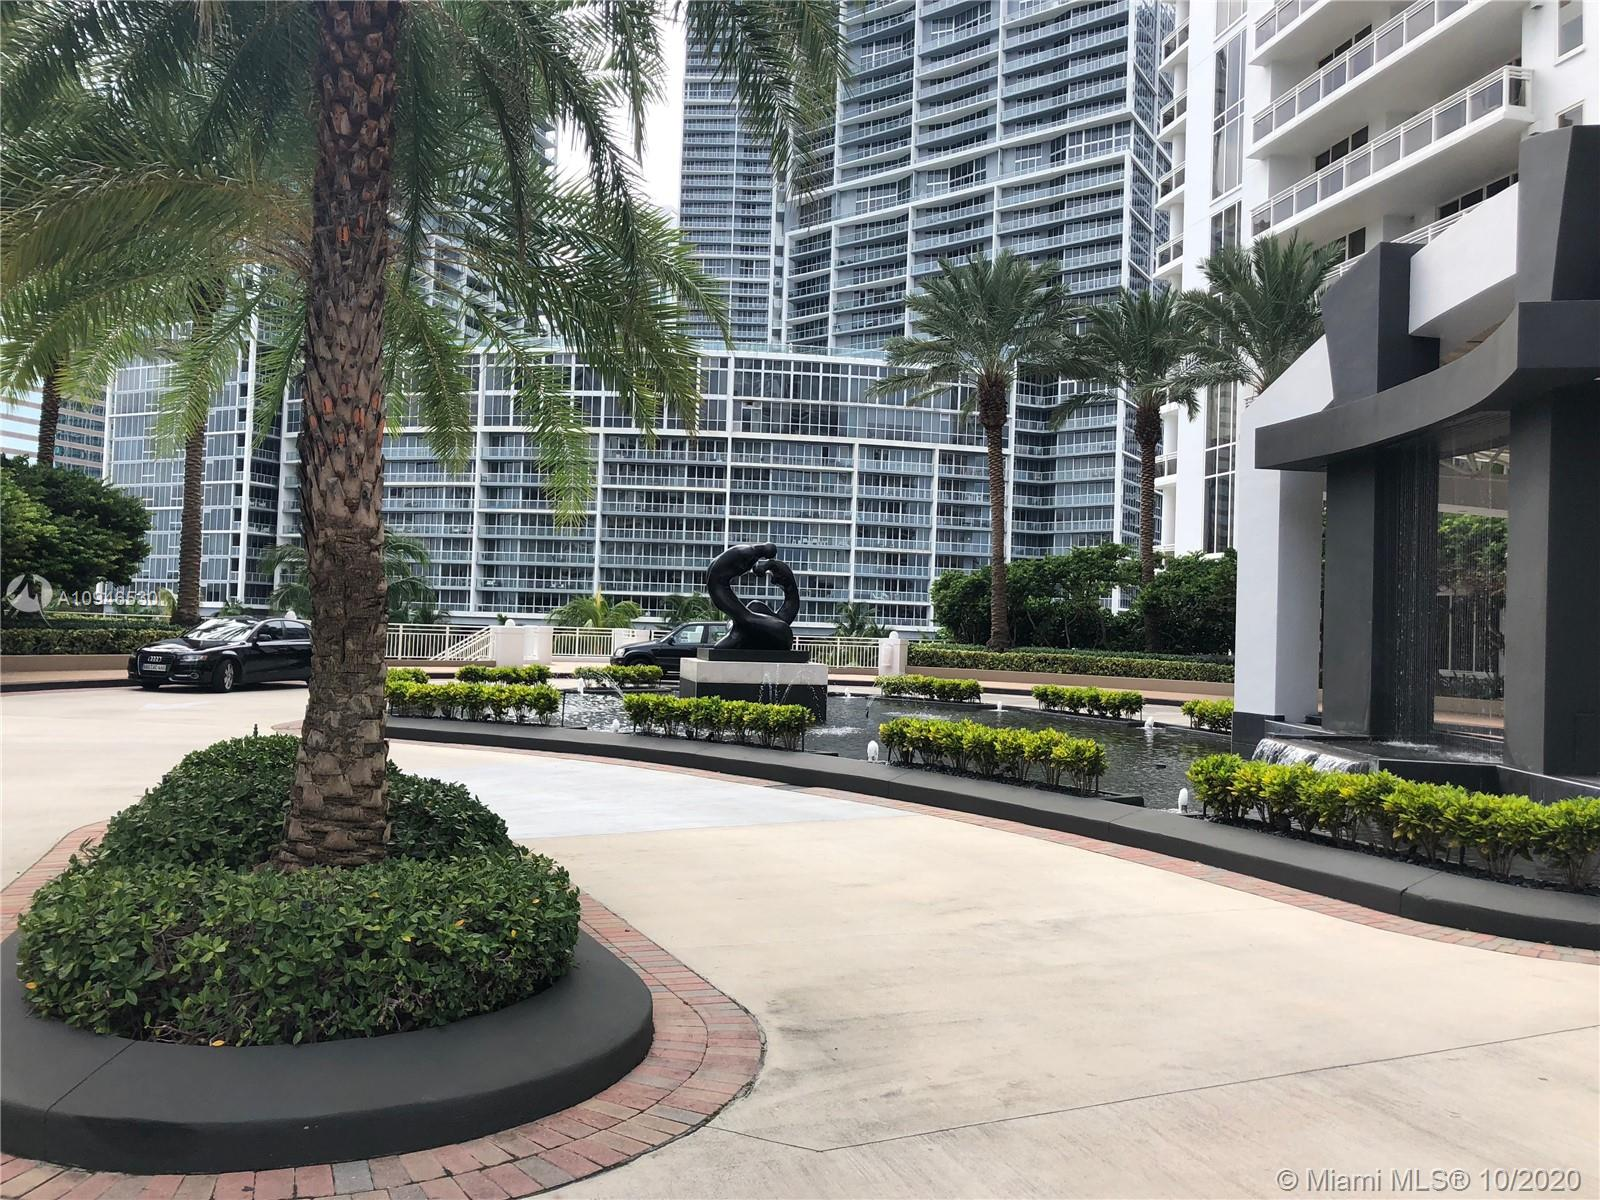 Spectacular Residence!!! Best Oversized corner unit with spectacular views of Miami. This 4br/4.5ba comes with spectacular marble floor thru out. Large chefs kitchen with large breakfast area and cooking Island. Built in walking closets. Two parking spaces. Carbonell features state of the art amenities. Two tennis courts, 2 story gym, basketball, racquetball, sauna, heated, swimming pool, concierge, free valet, recently renovated common areas.